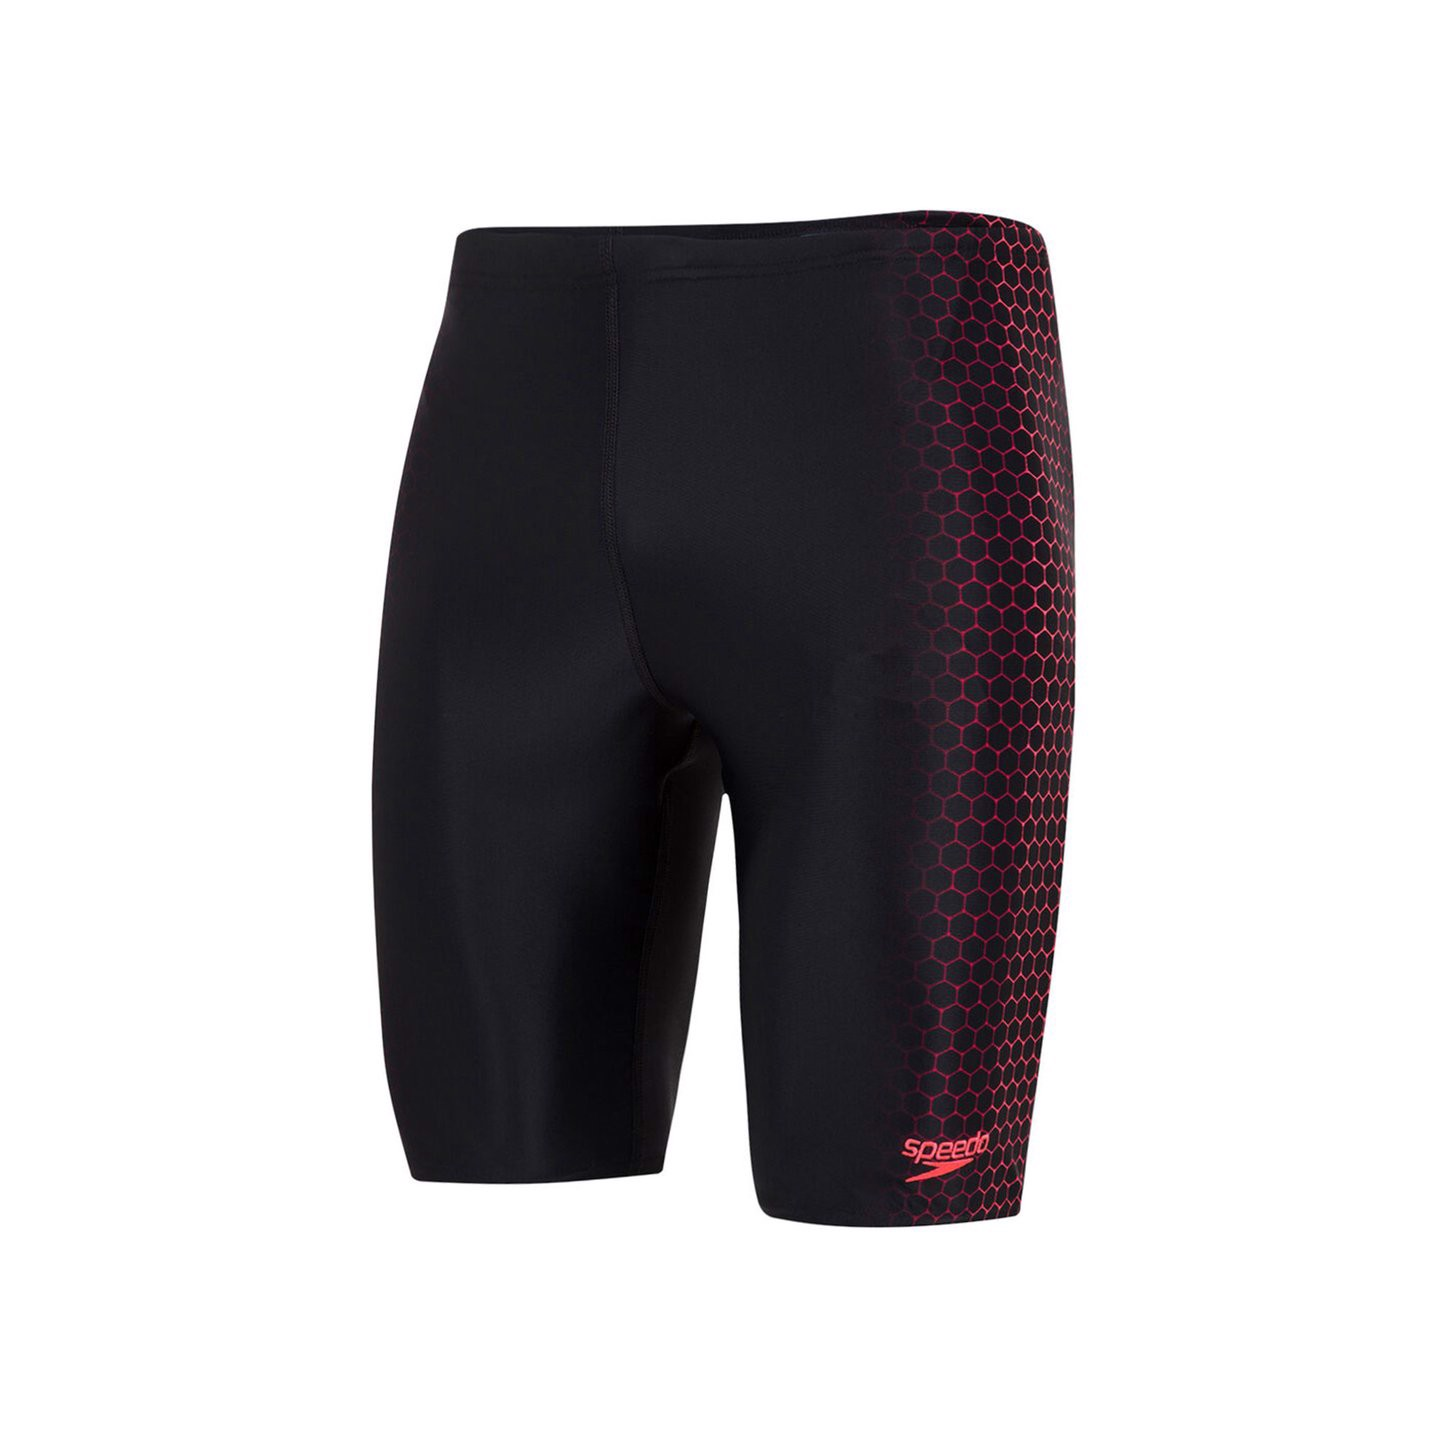 Speedo - Đồ bơi nam Speedo Placement Jammer Black Red Swim SS20-8125